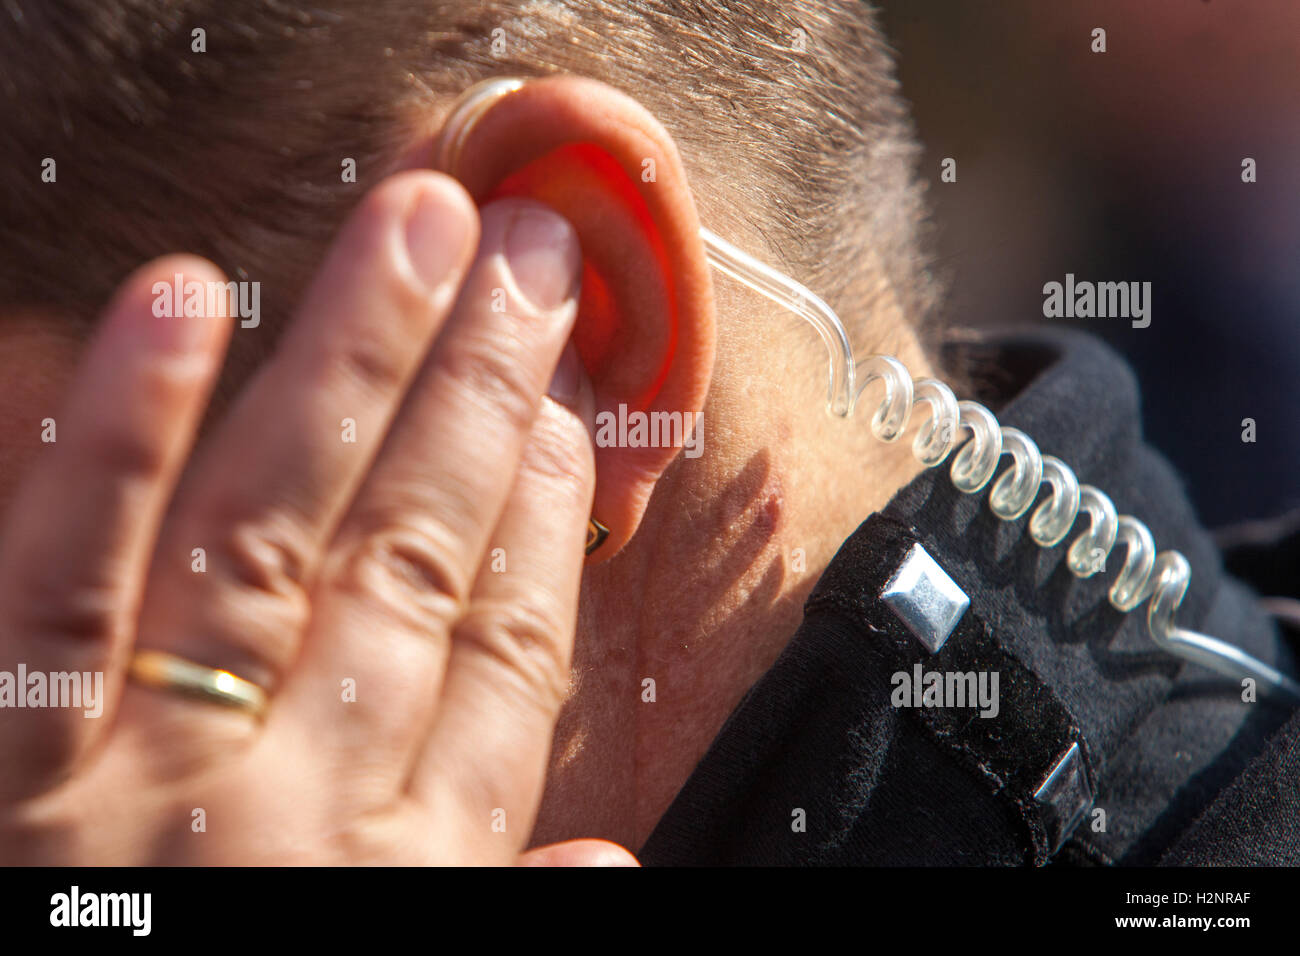 Bodyguard and earpieces, detail ear, security - Stock Image